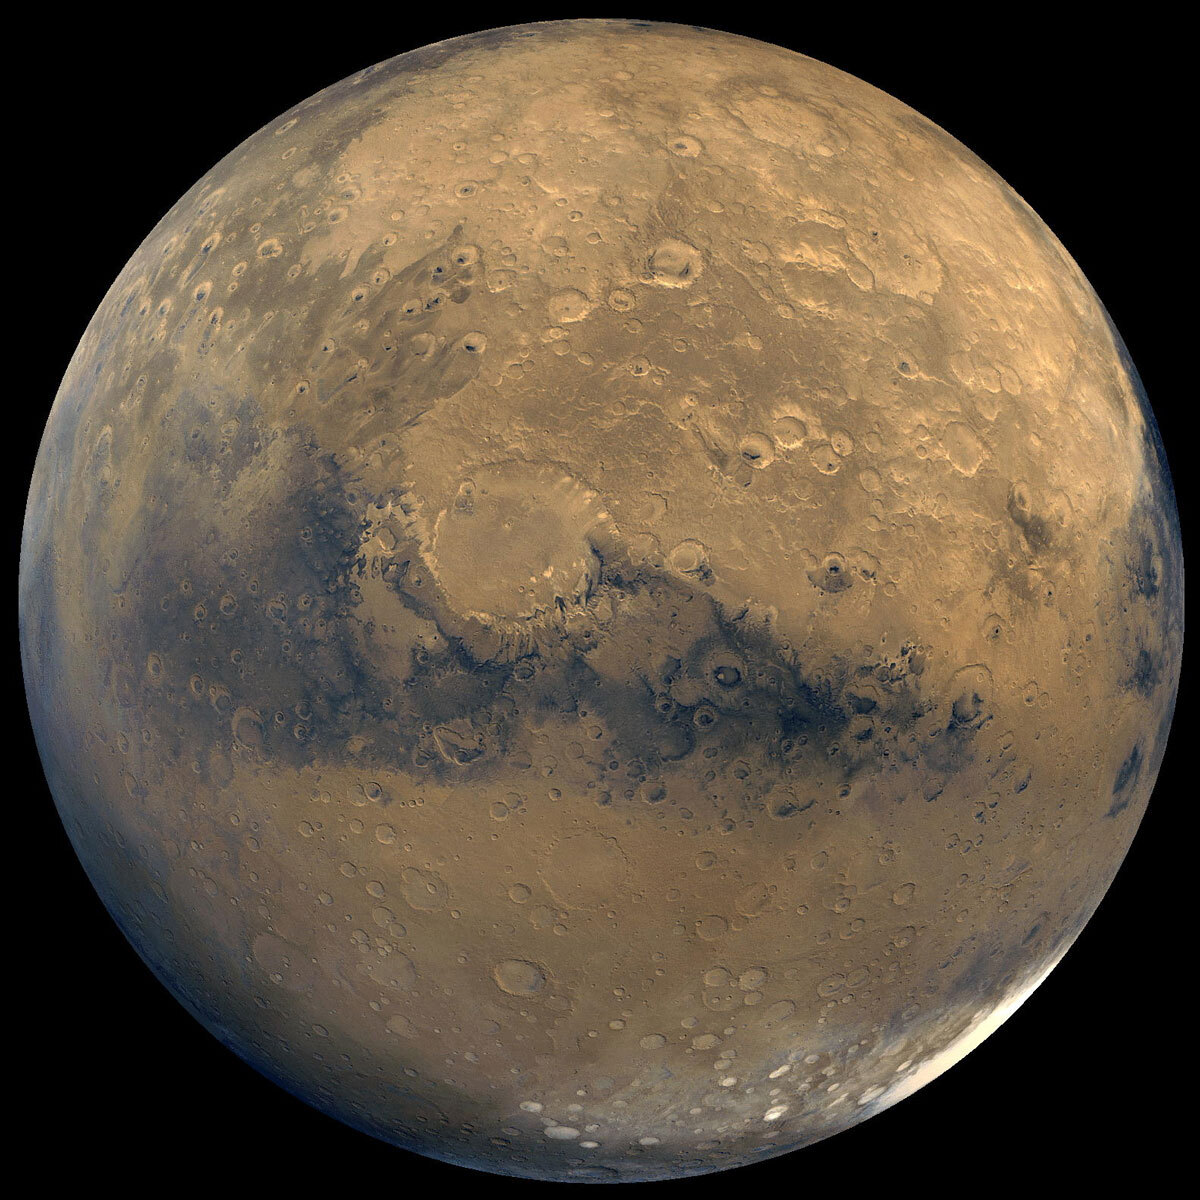 This global view of Mars is composed of about 100 Viking Orbiter images.